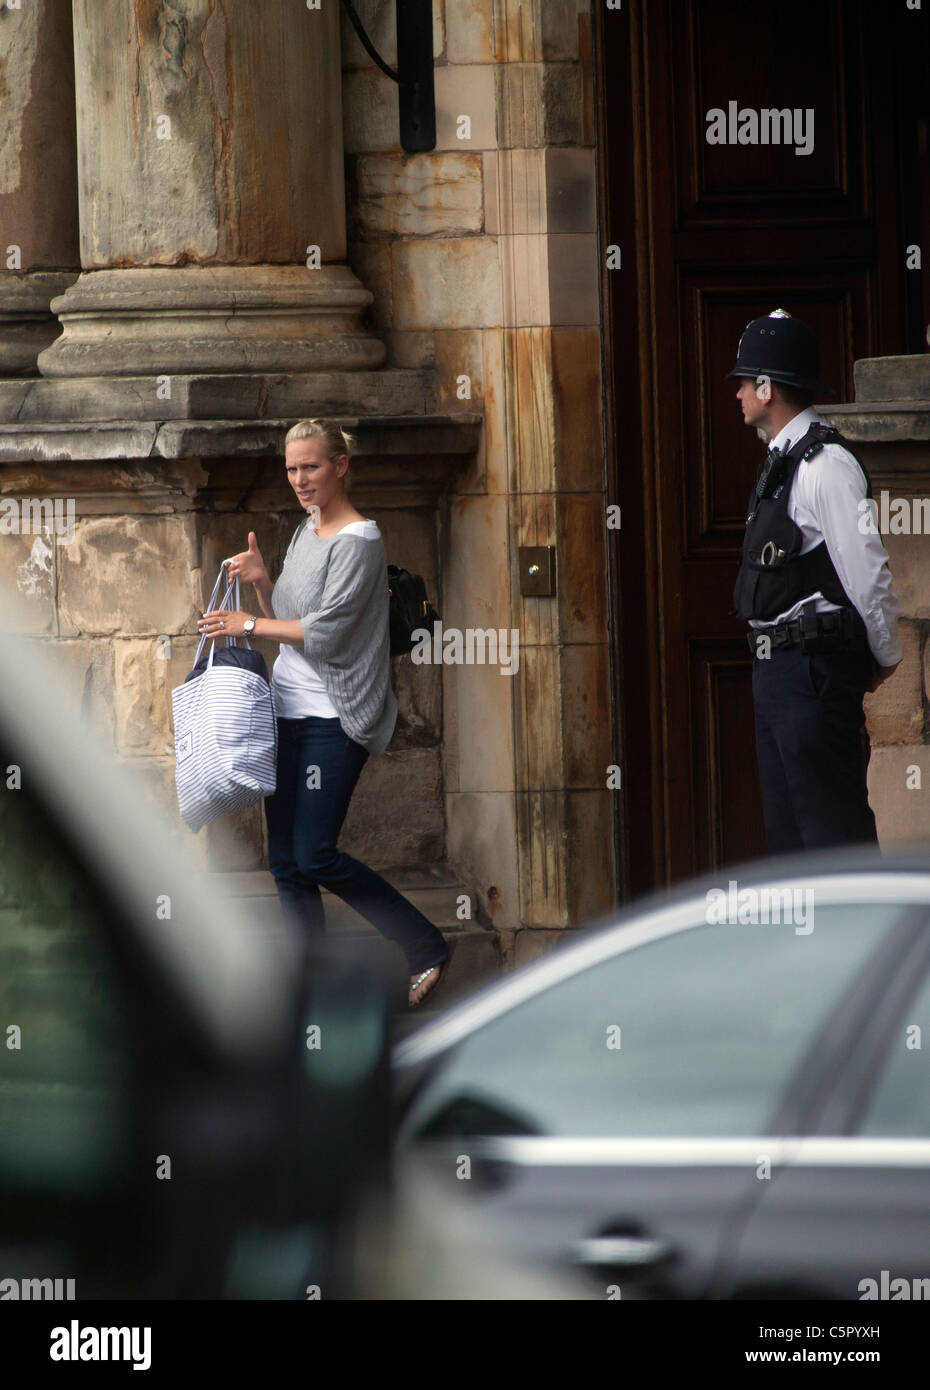 Zara Phillips leaves the Palace of Holyroodhouse the day after her wedding in Edinburgh. - Stock Image